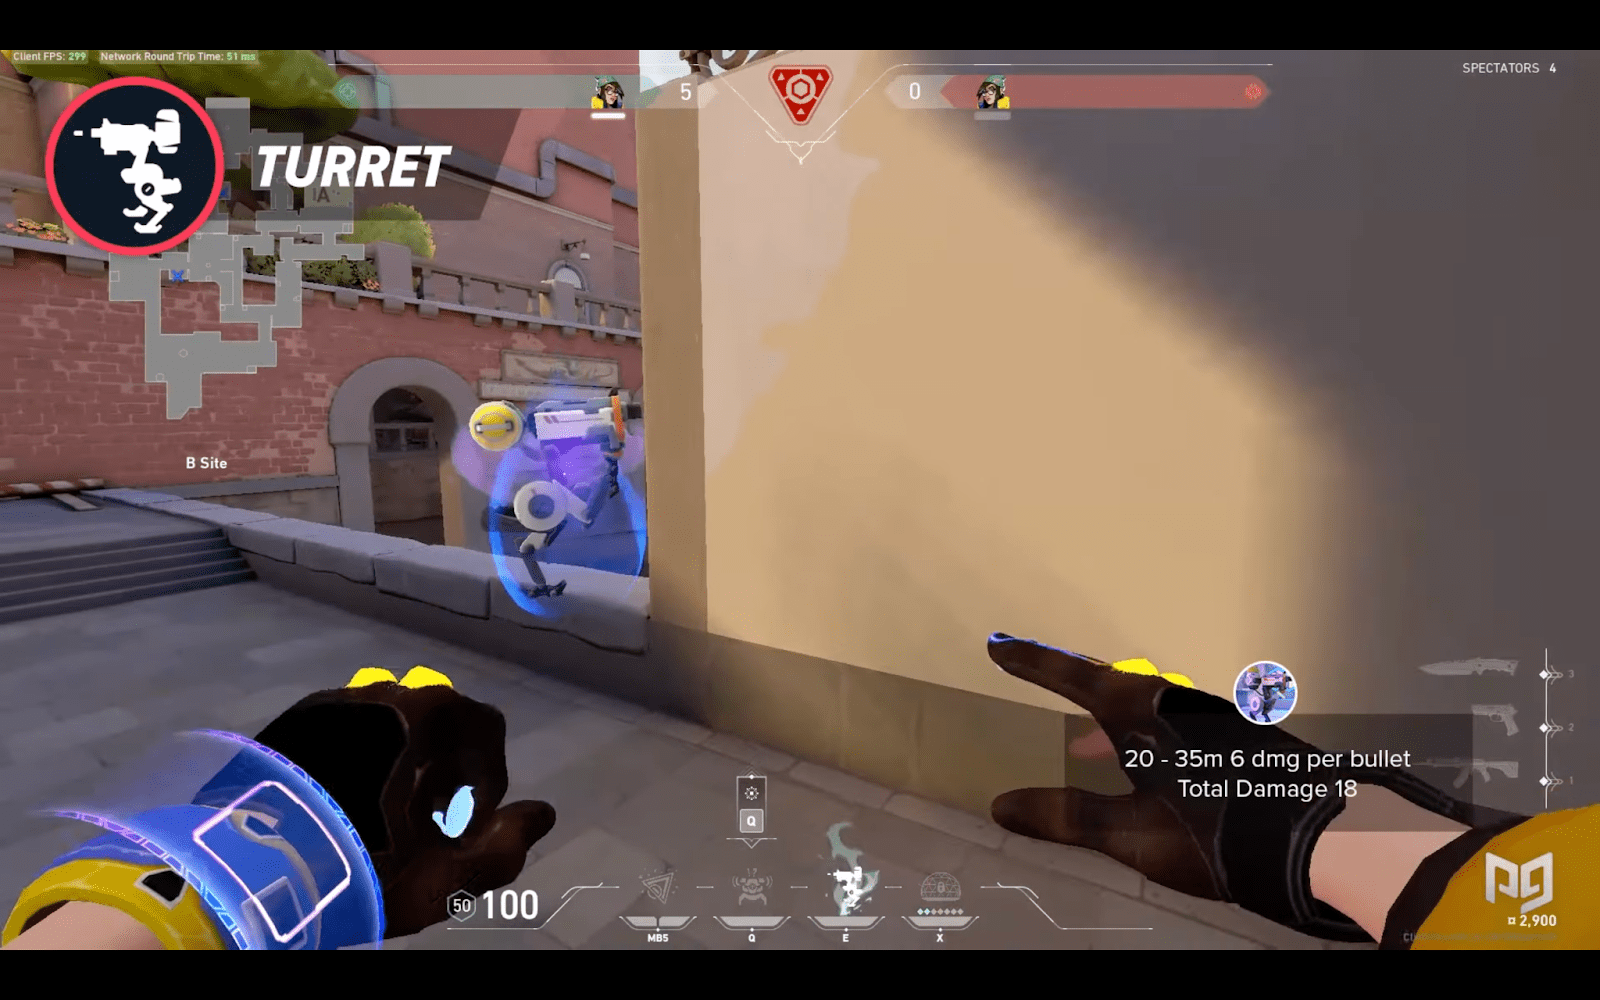 Killjoy placing her turret to protect B site on Ascent